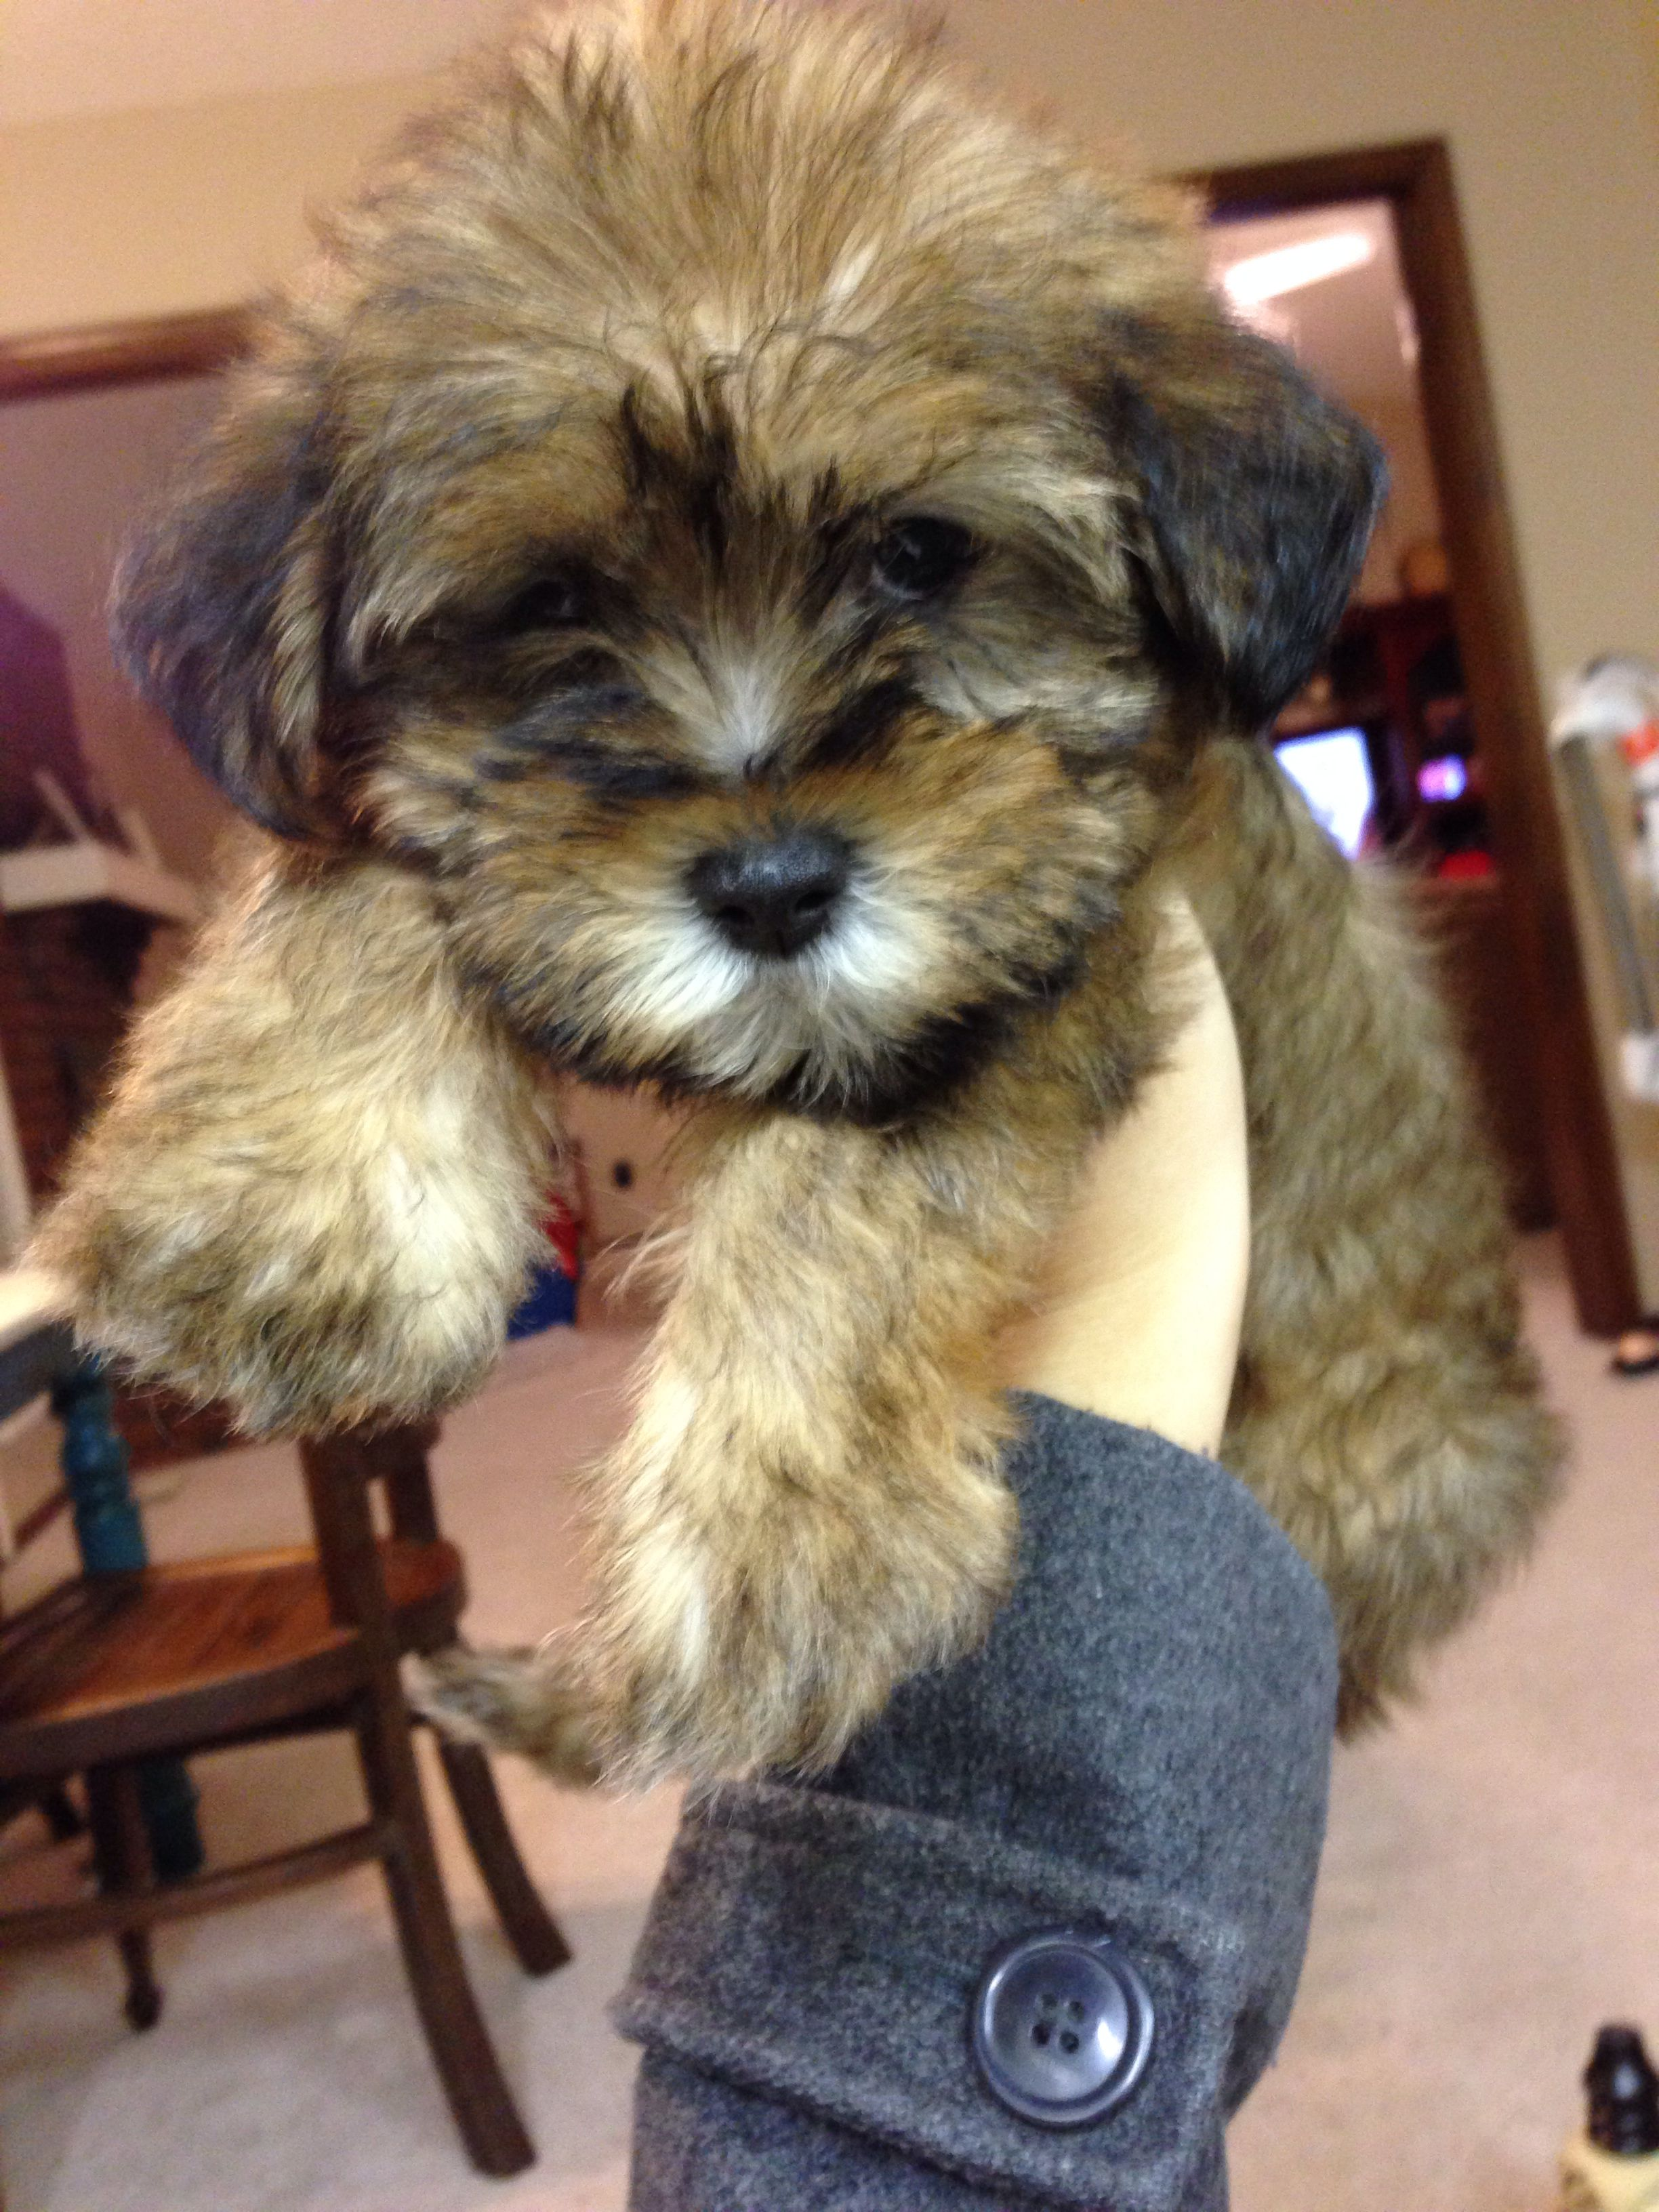 Shih Tzu Schnauzer Mix Teddy Bear Puppy Shih Tzu Teddy Bear